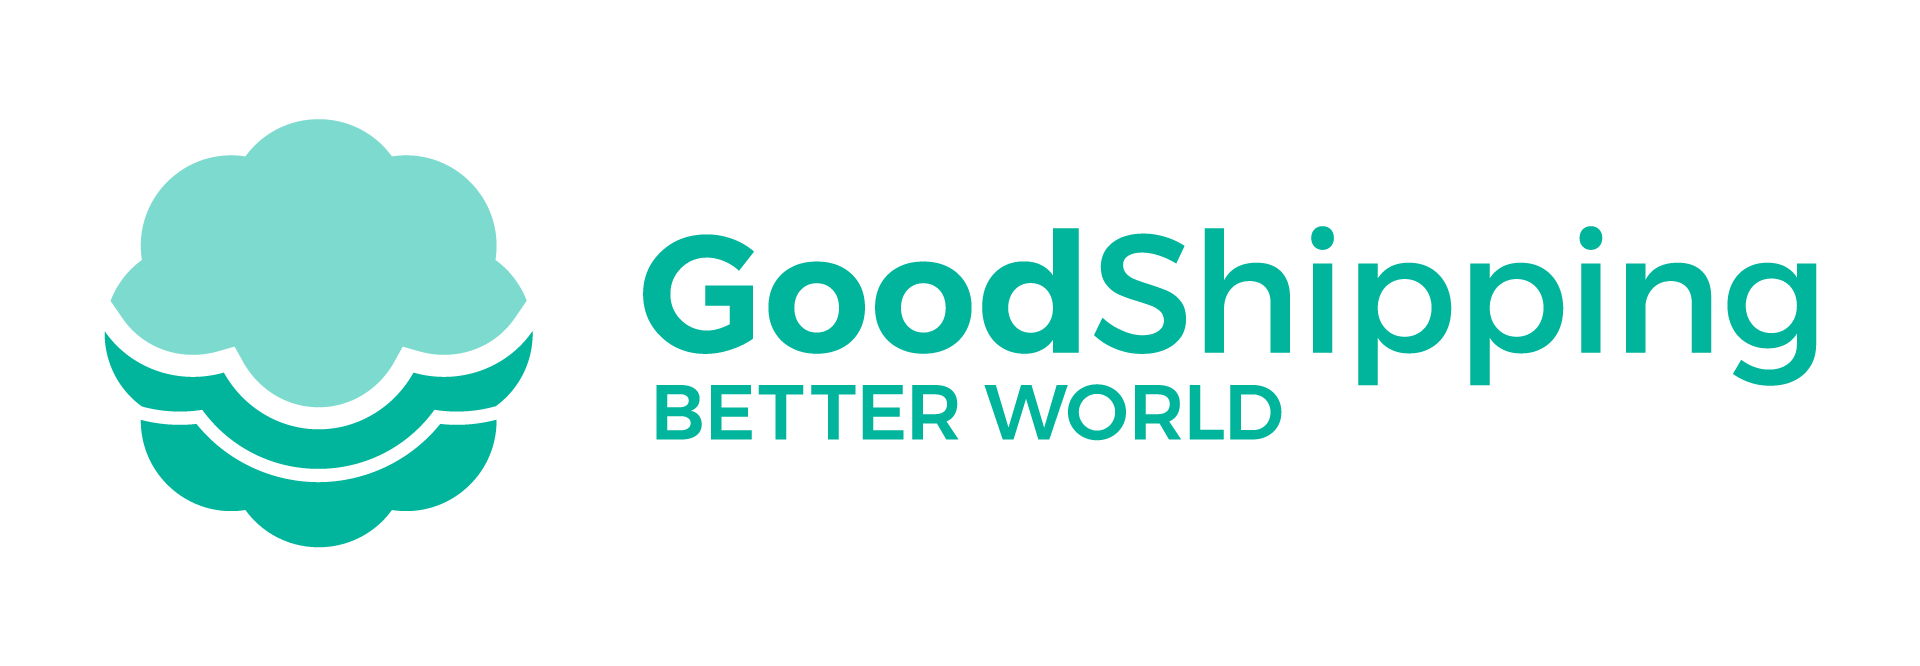 goodshipping-green-payoff